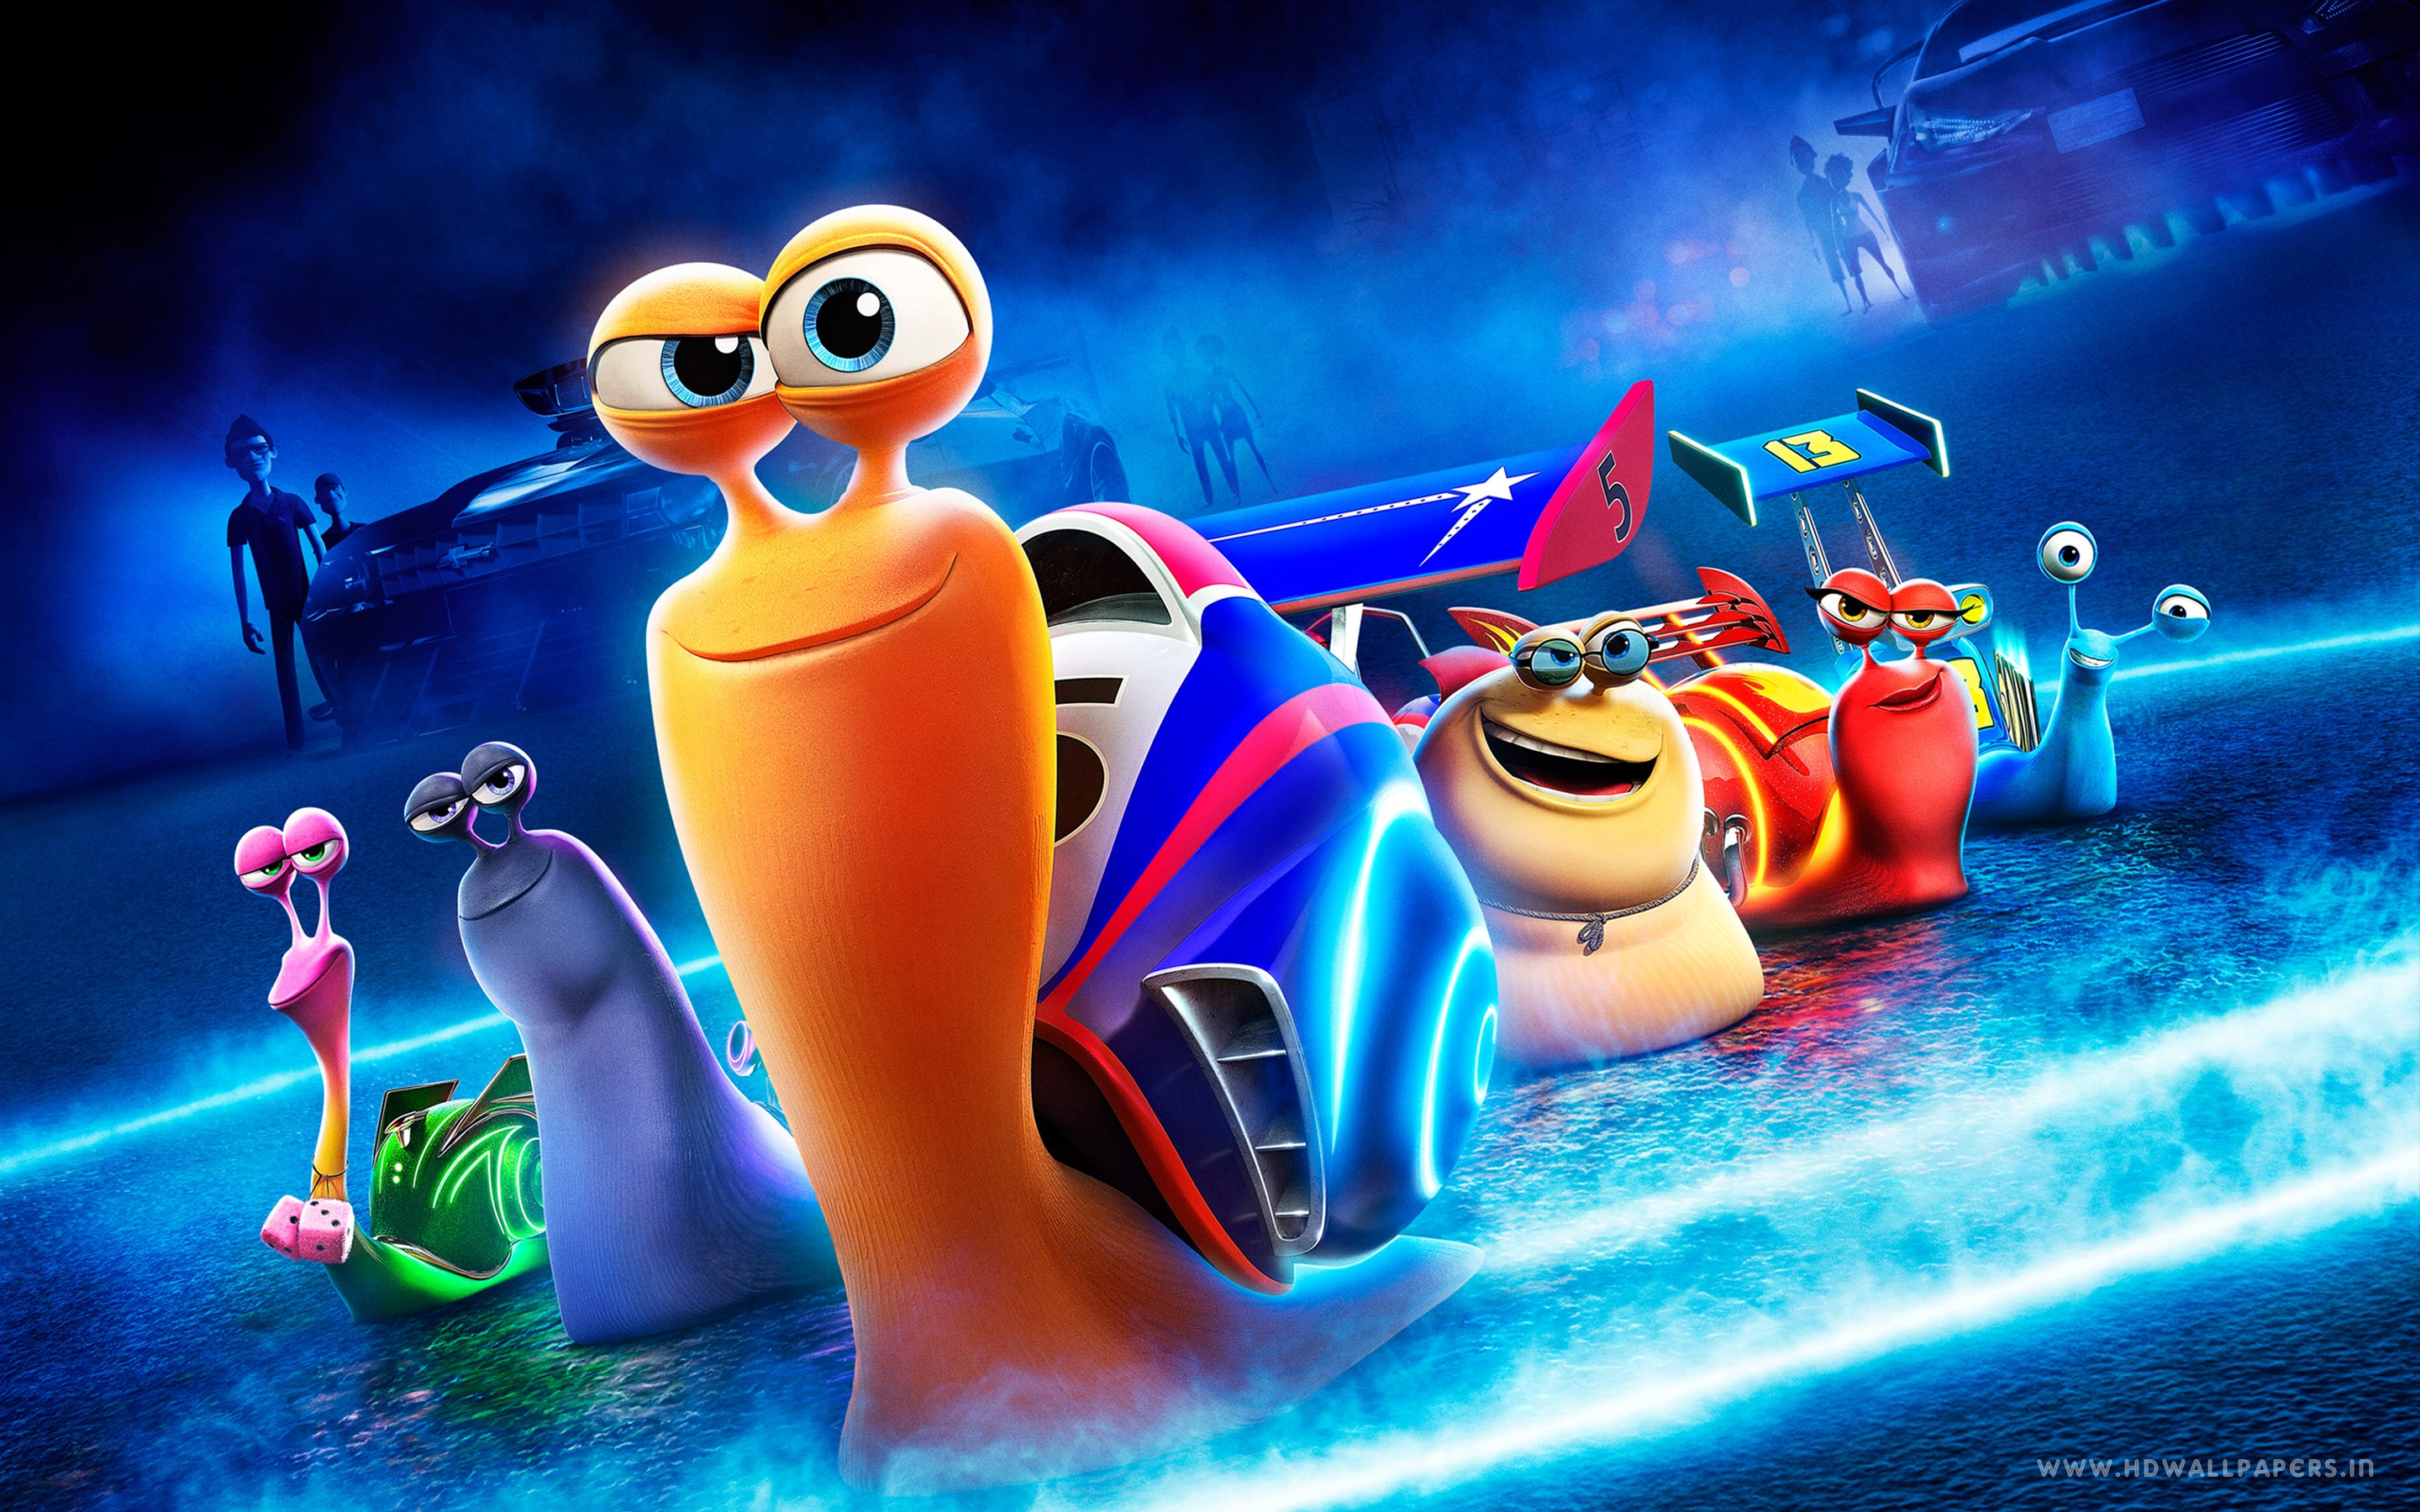 turbo movie wallpapers in jpg format for free download